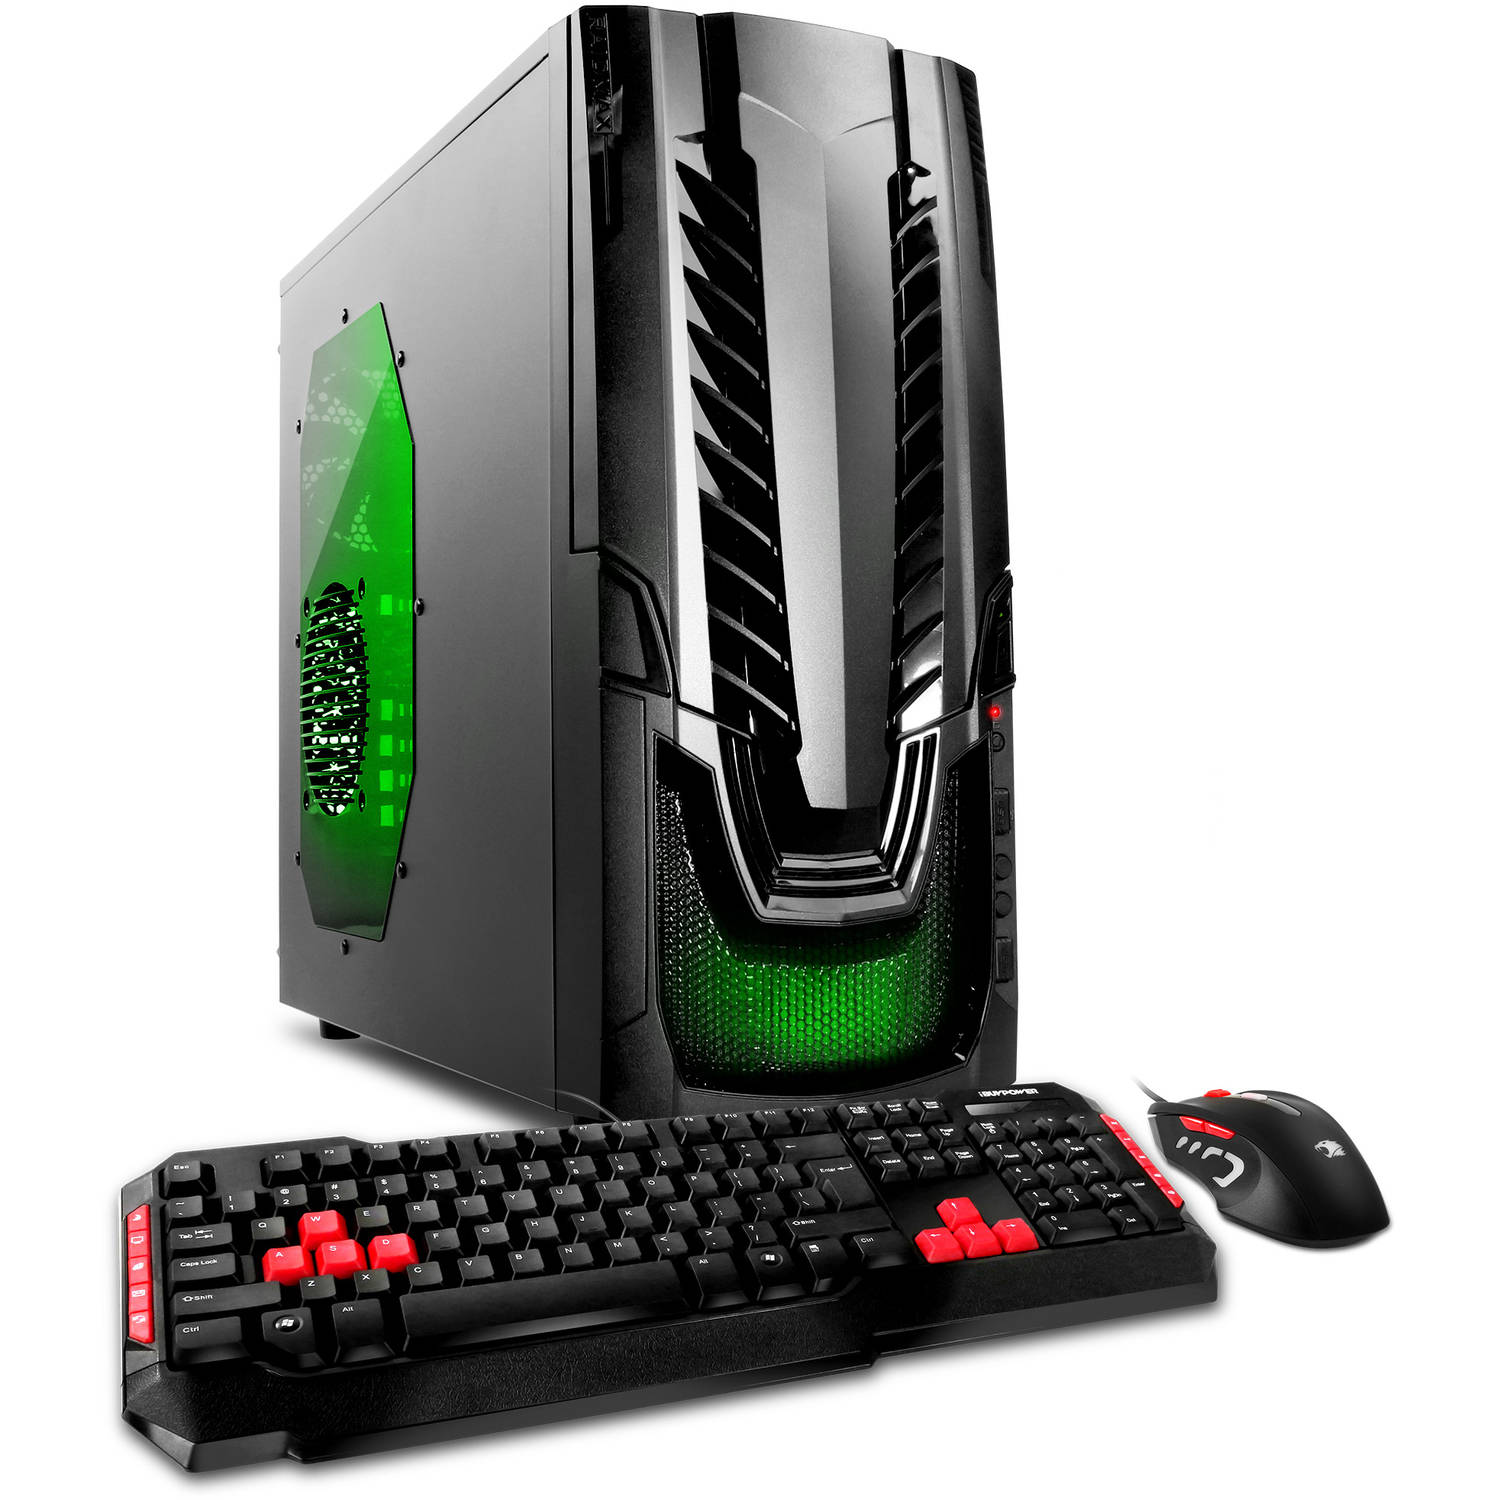 iBUYPOWER WA550Gi Gaming Desktop PC with Intel Skylake Core i5-6400 Quad-Core Processor, 8GB Memory, 1TB Hard Drive and... by iBuypower